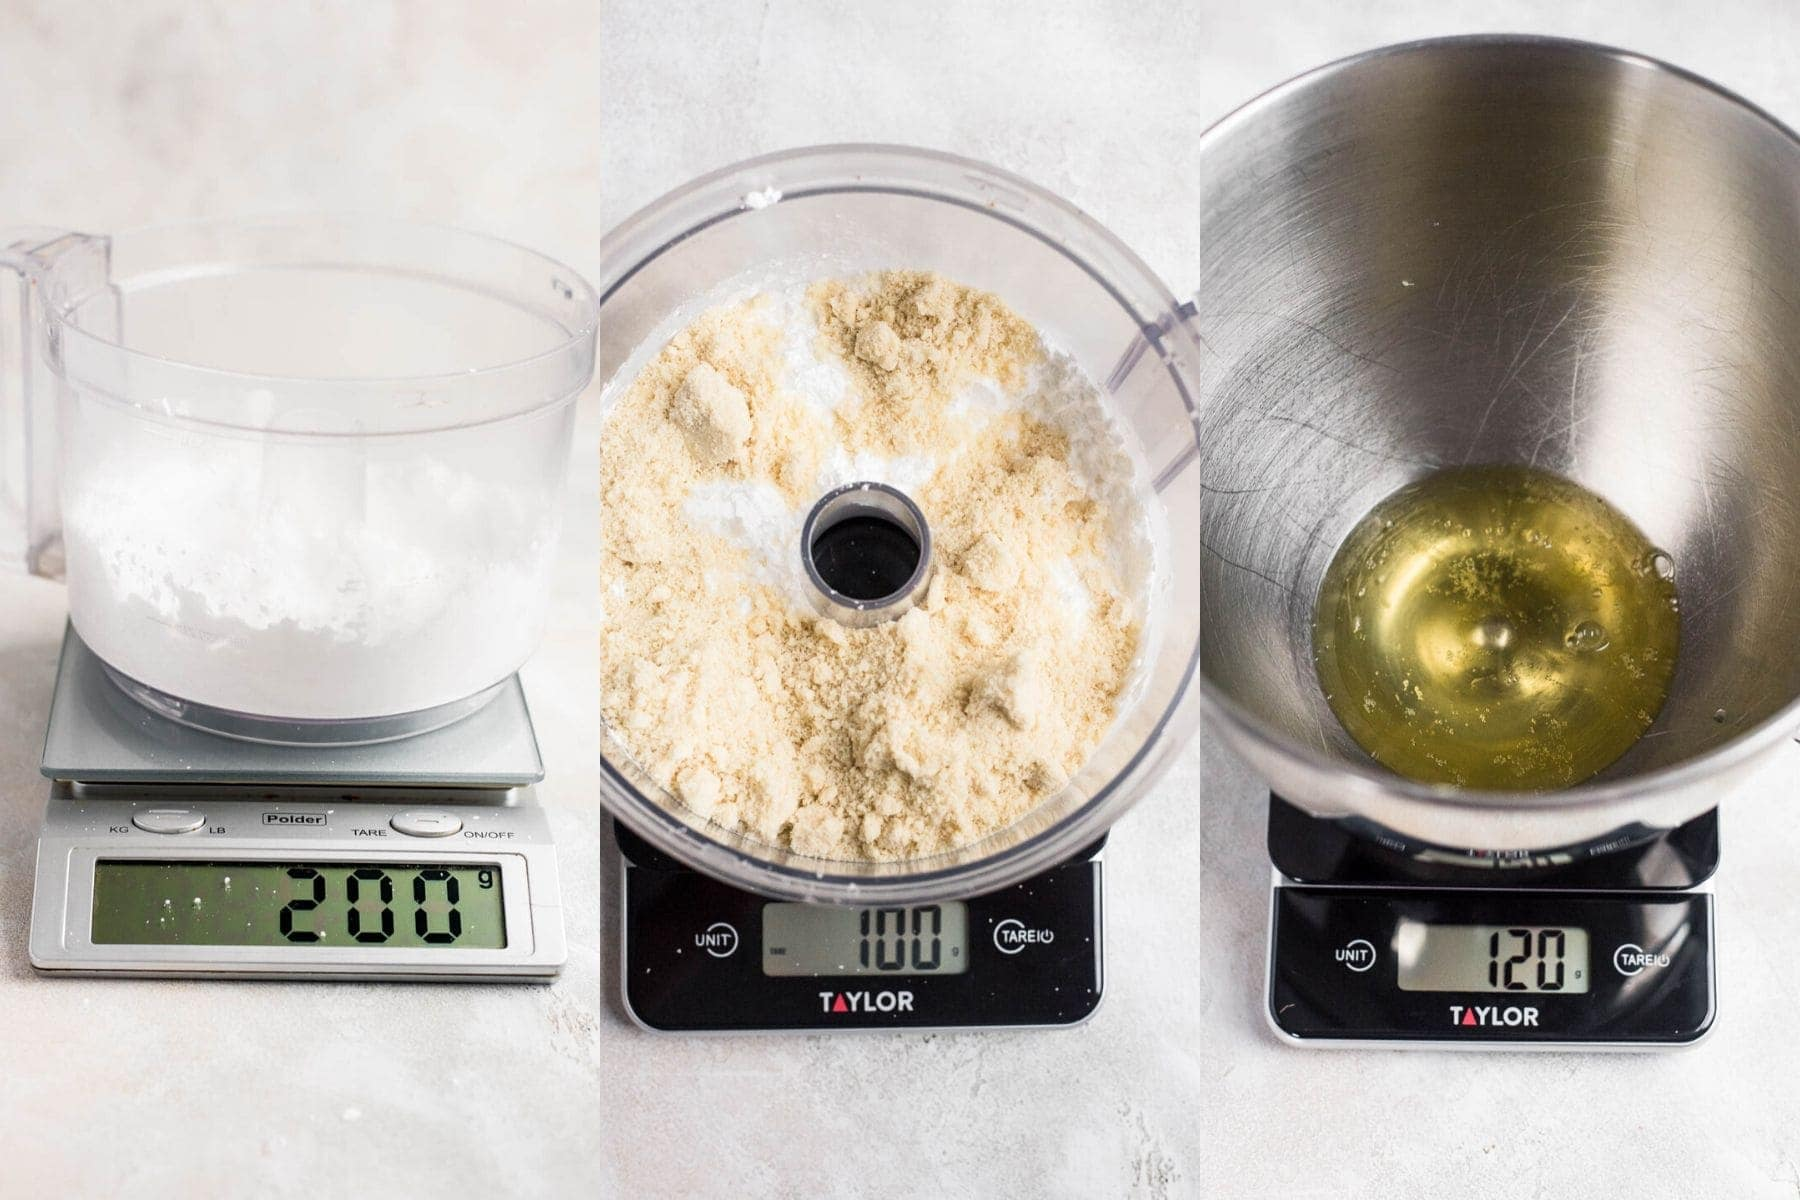 ingredients weighed for macarons